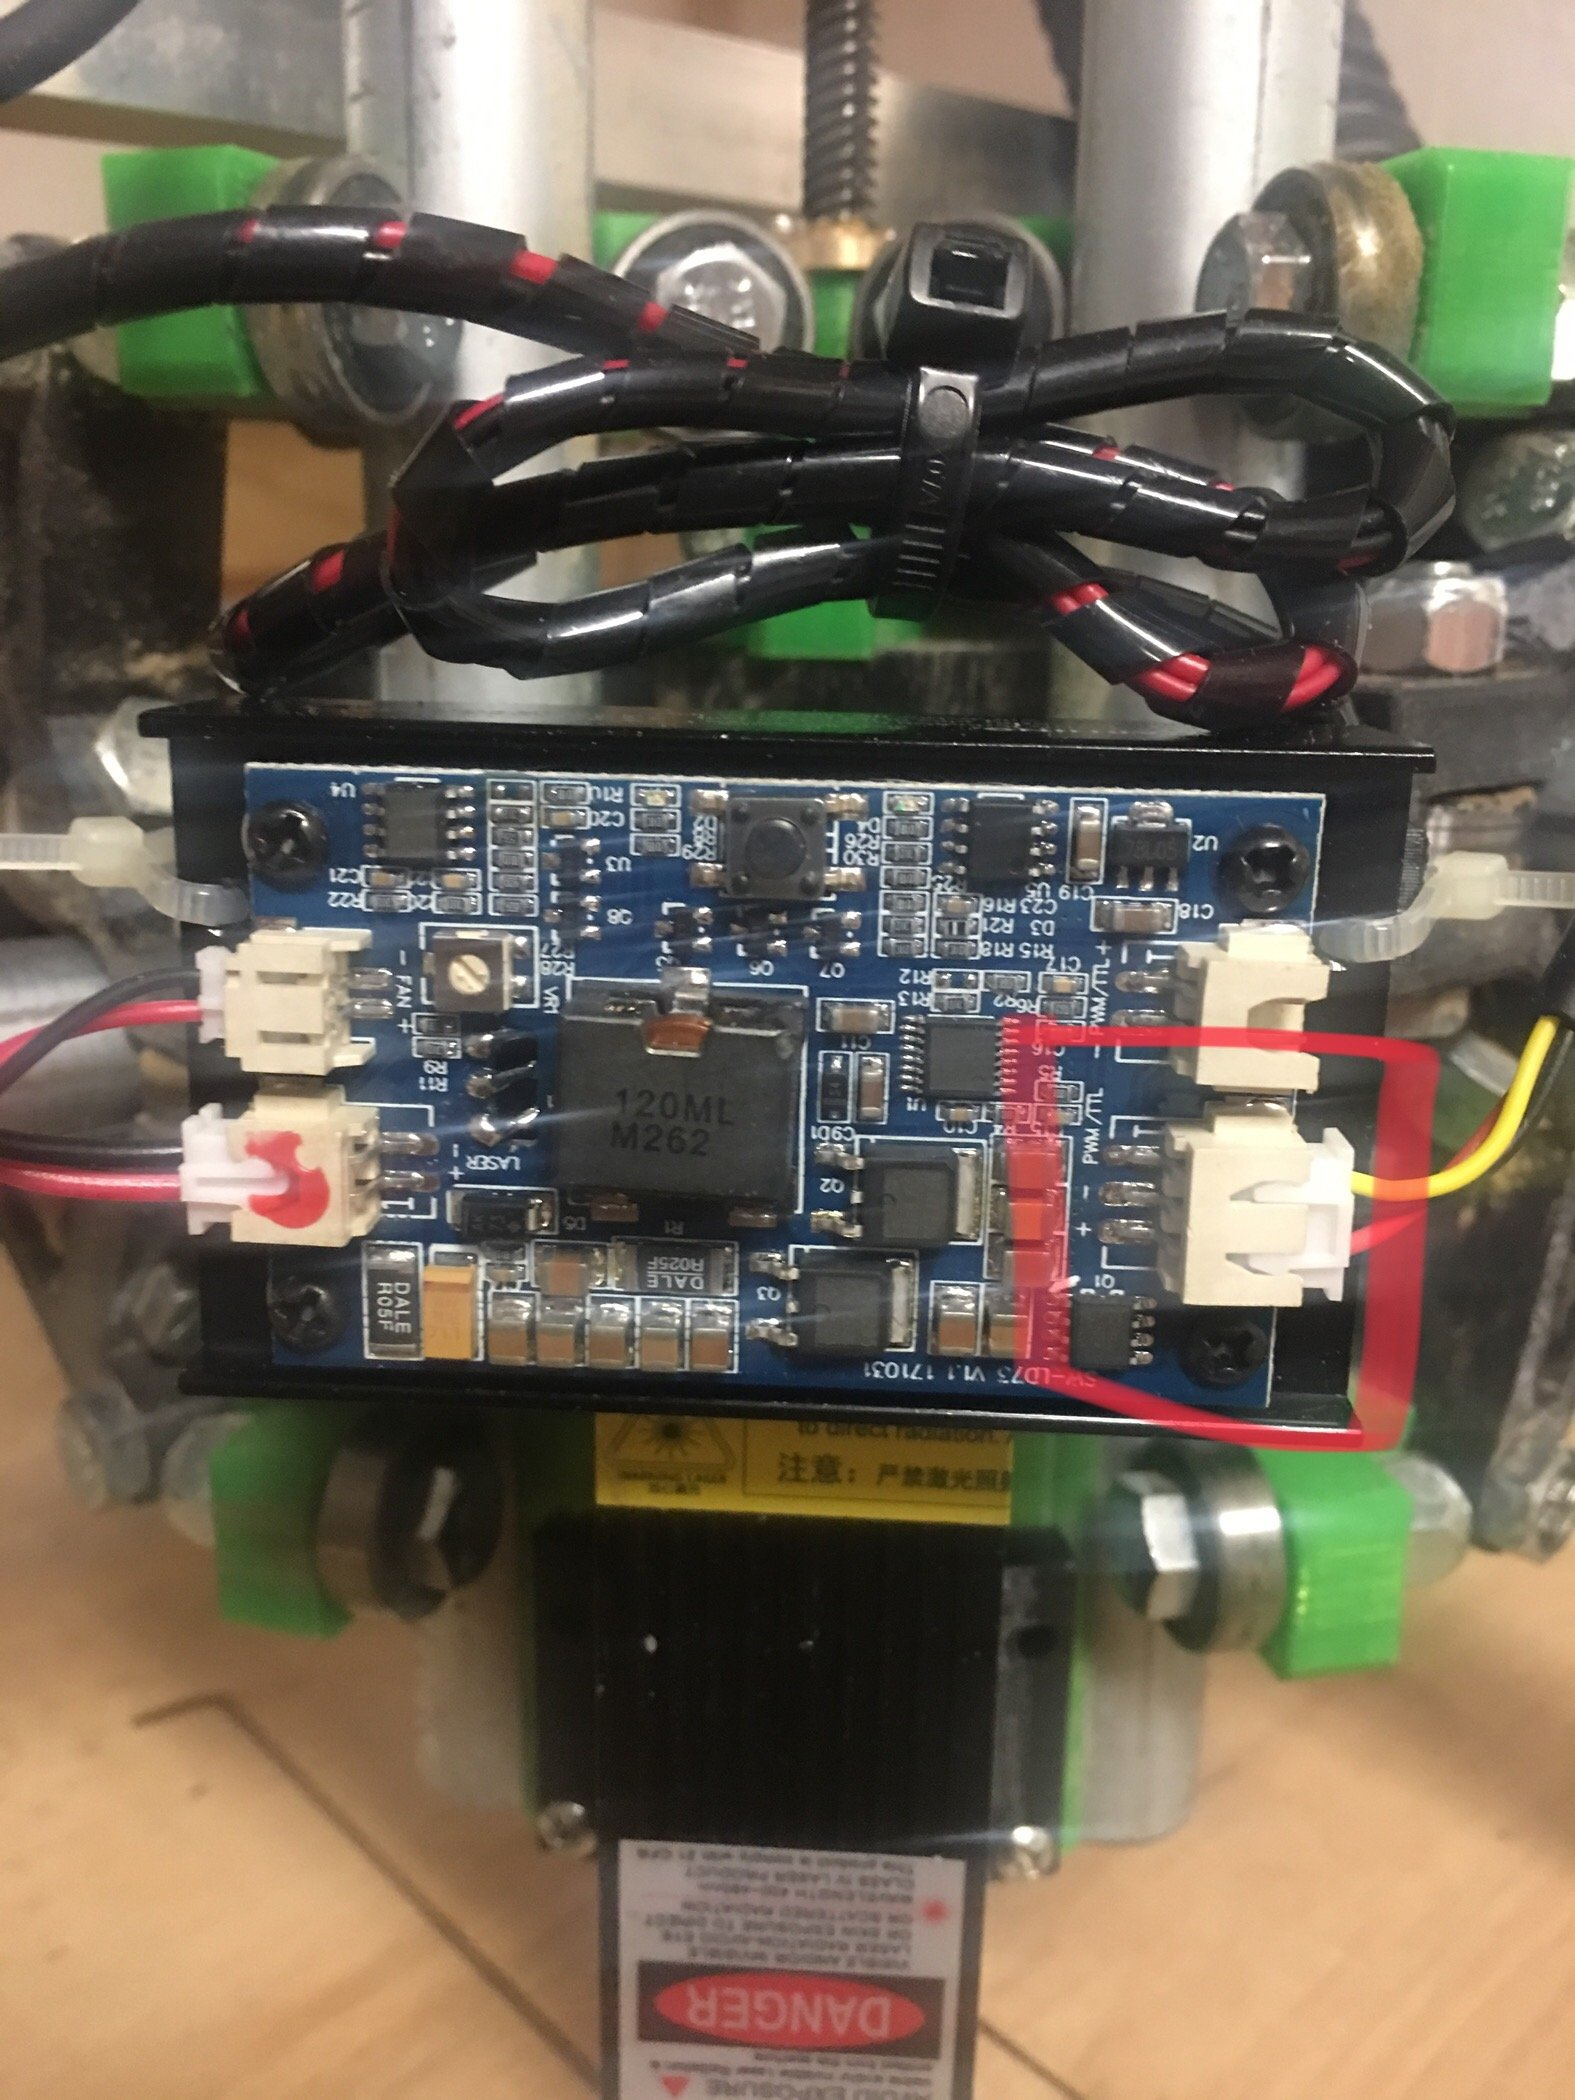 IMG_1329  Mw Laser Wiring Diagram on way switches, channel car, channel car amplifier, light fluorescent lamp ballast, speed single phase motor, three-way light switch, pole contactor, bulb ballast, lamp ballast, pole thermostat,